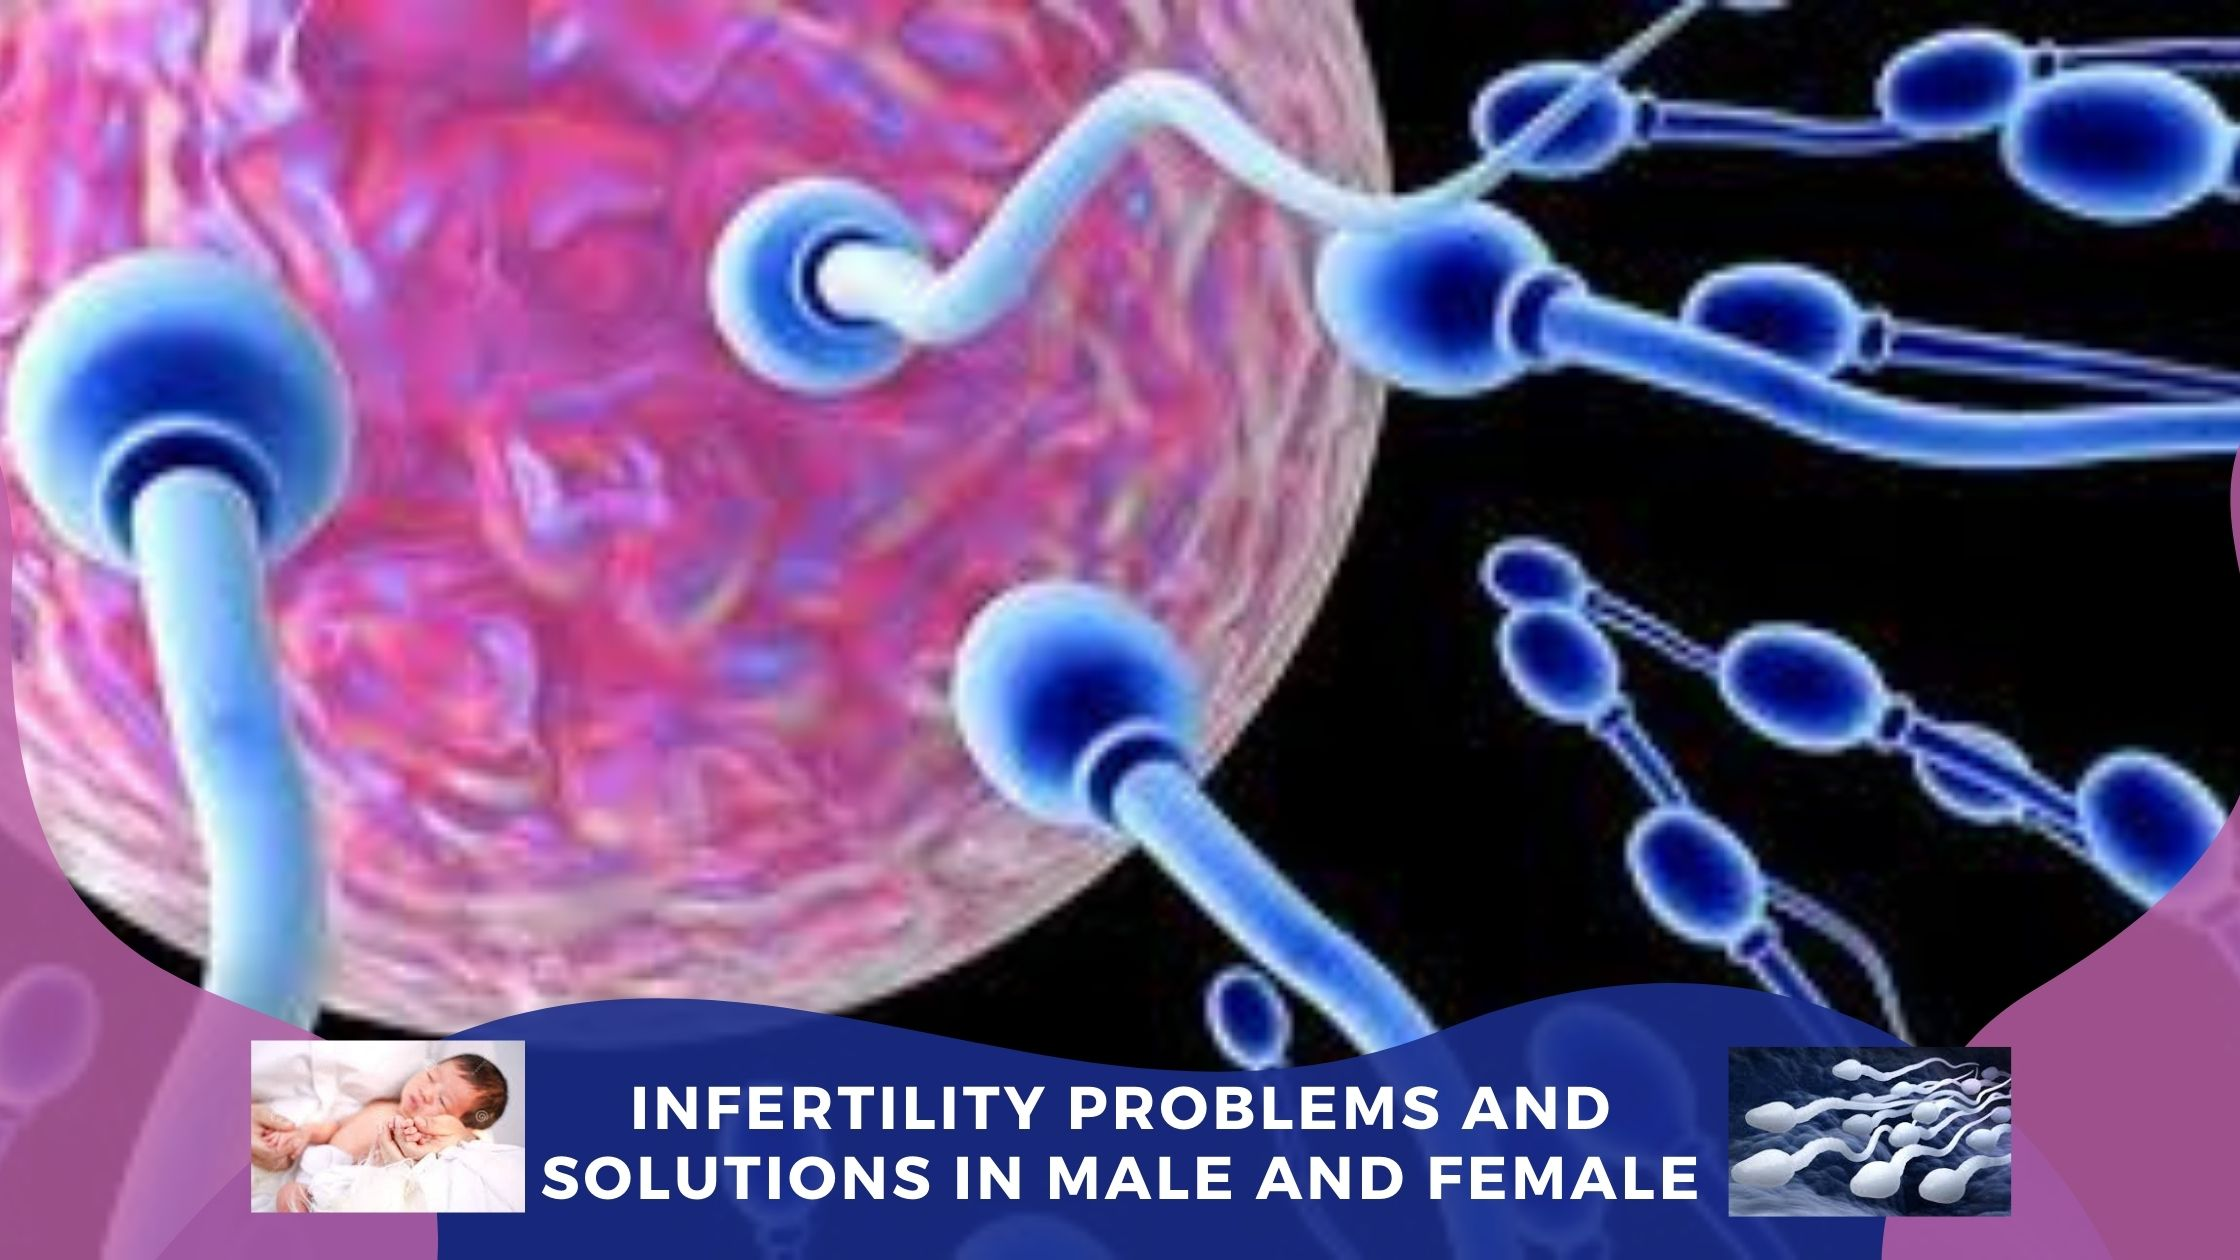 INFERTILITY PROBLEMS and SOLUTIONS in Male and Female